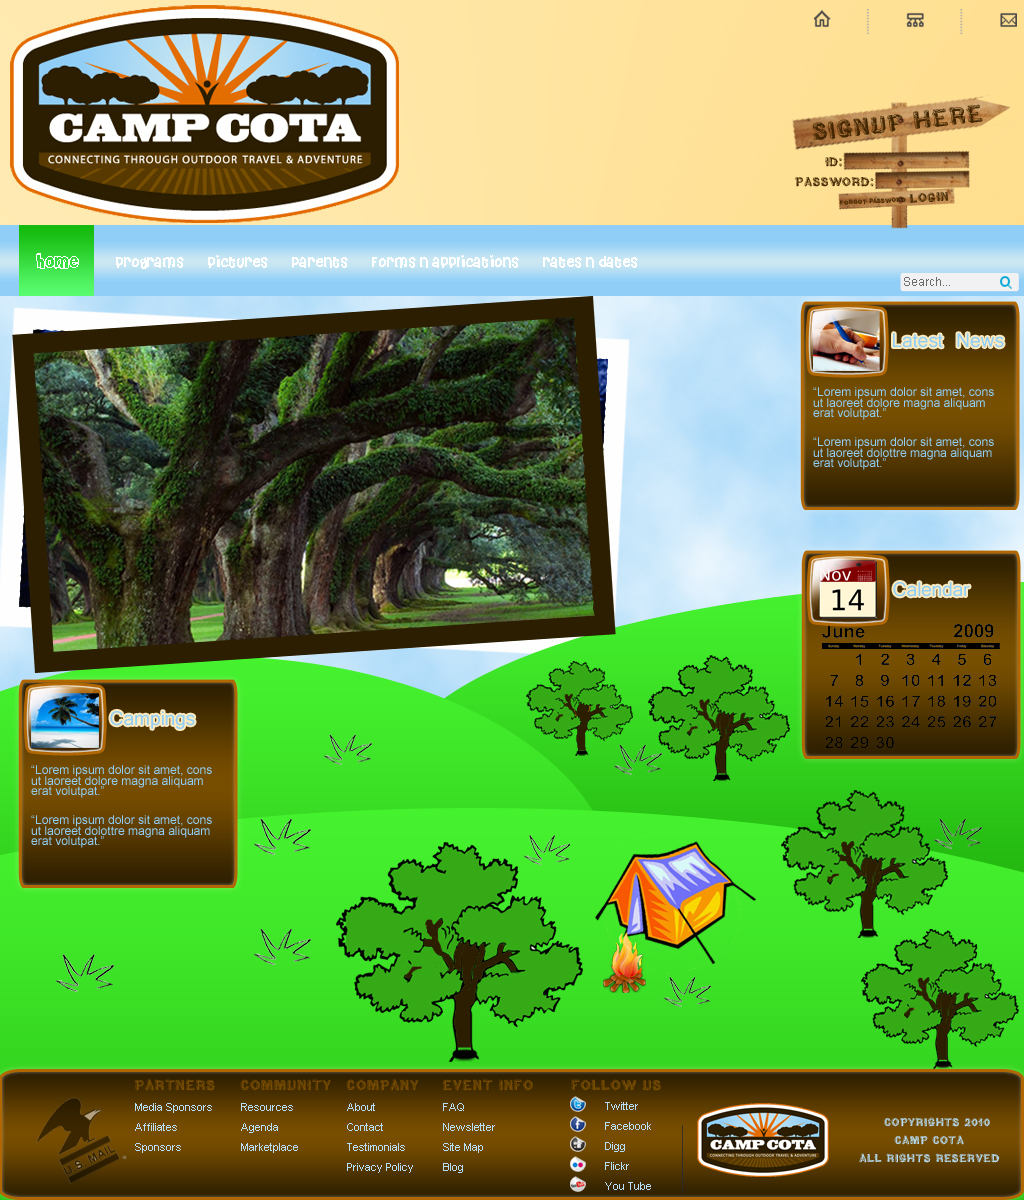 Web Page Design by Geniye - Entry No. 21 in the Web Page Design Contest Camp COTA - Clean, Crisp Design Needed.